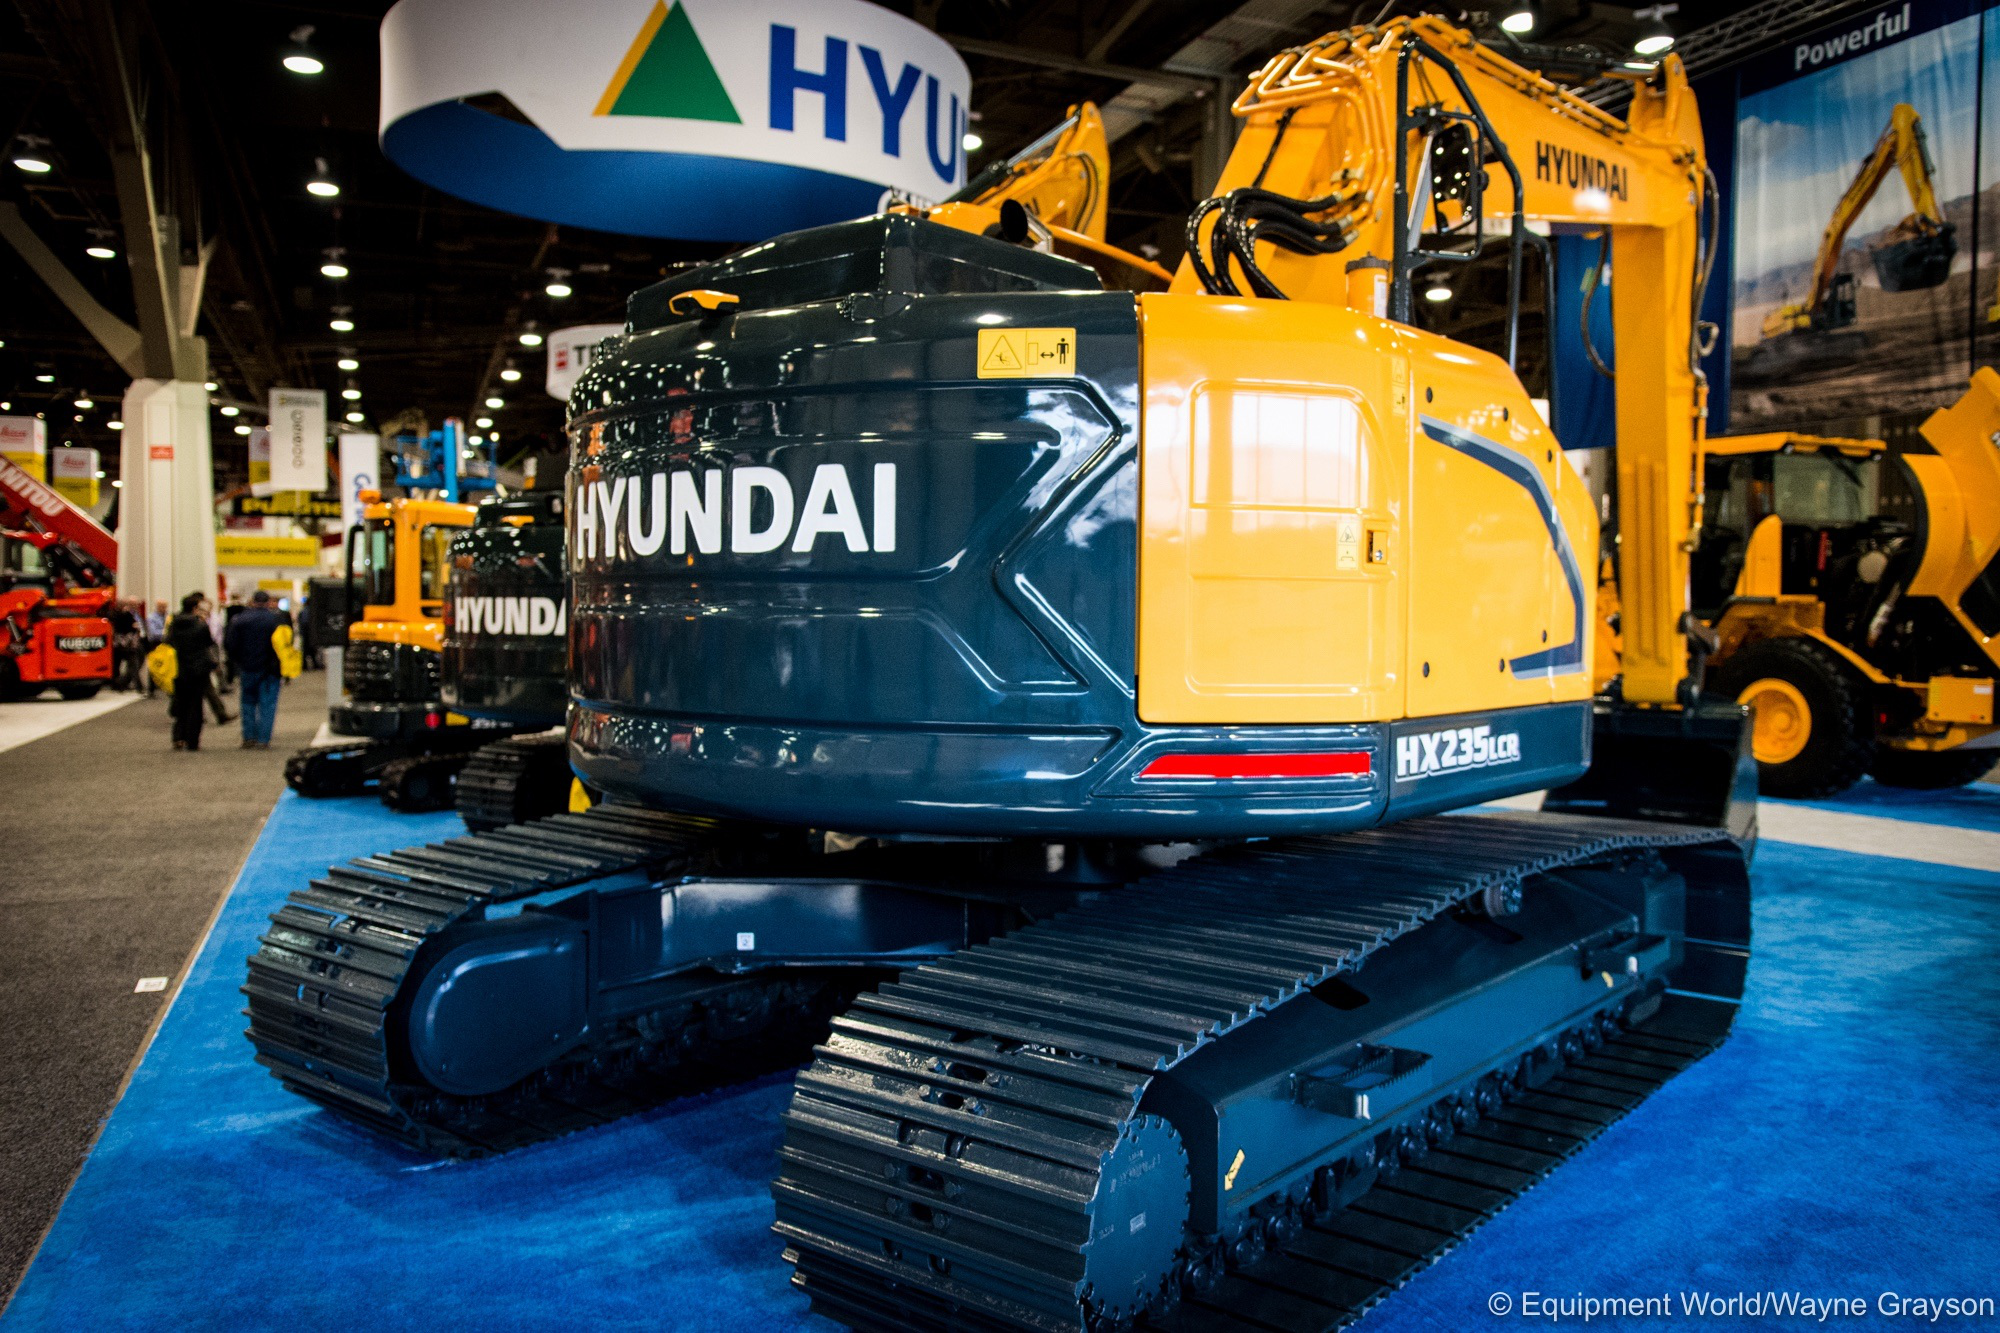 Hyundai Unveils 2 New HX Series Excavators But With A Slightly